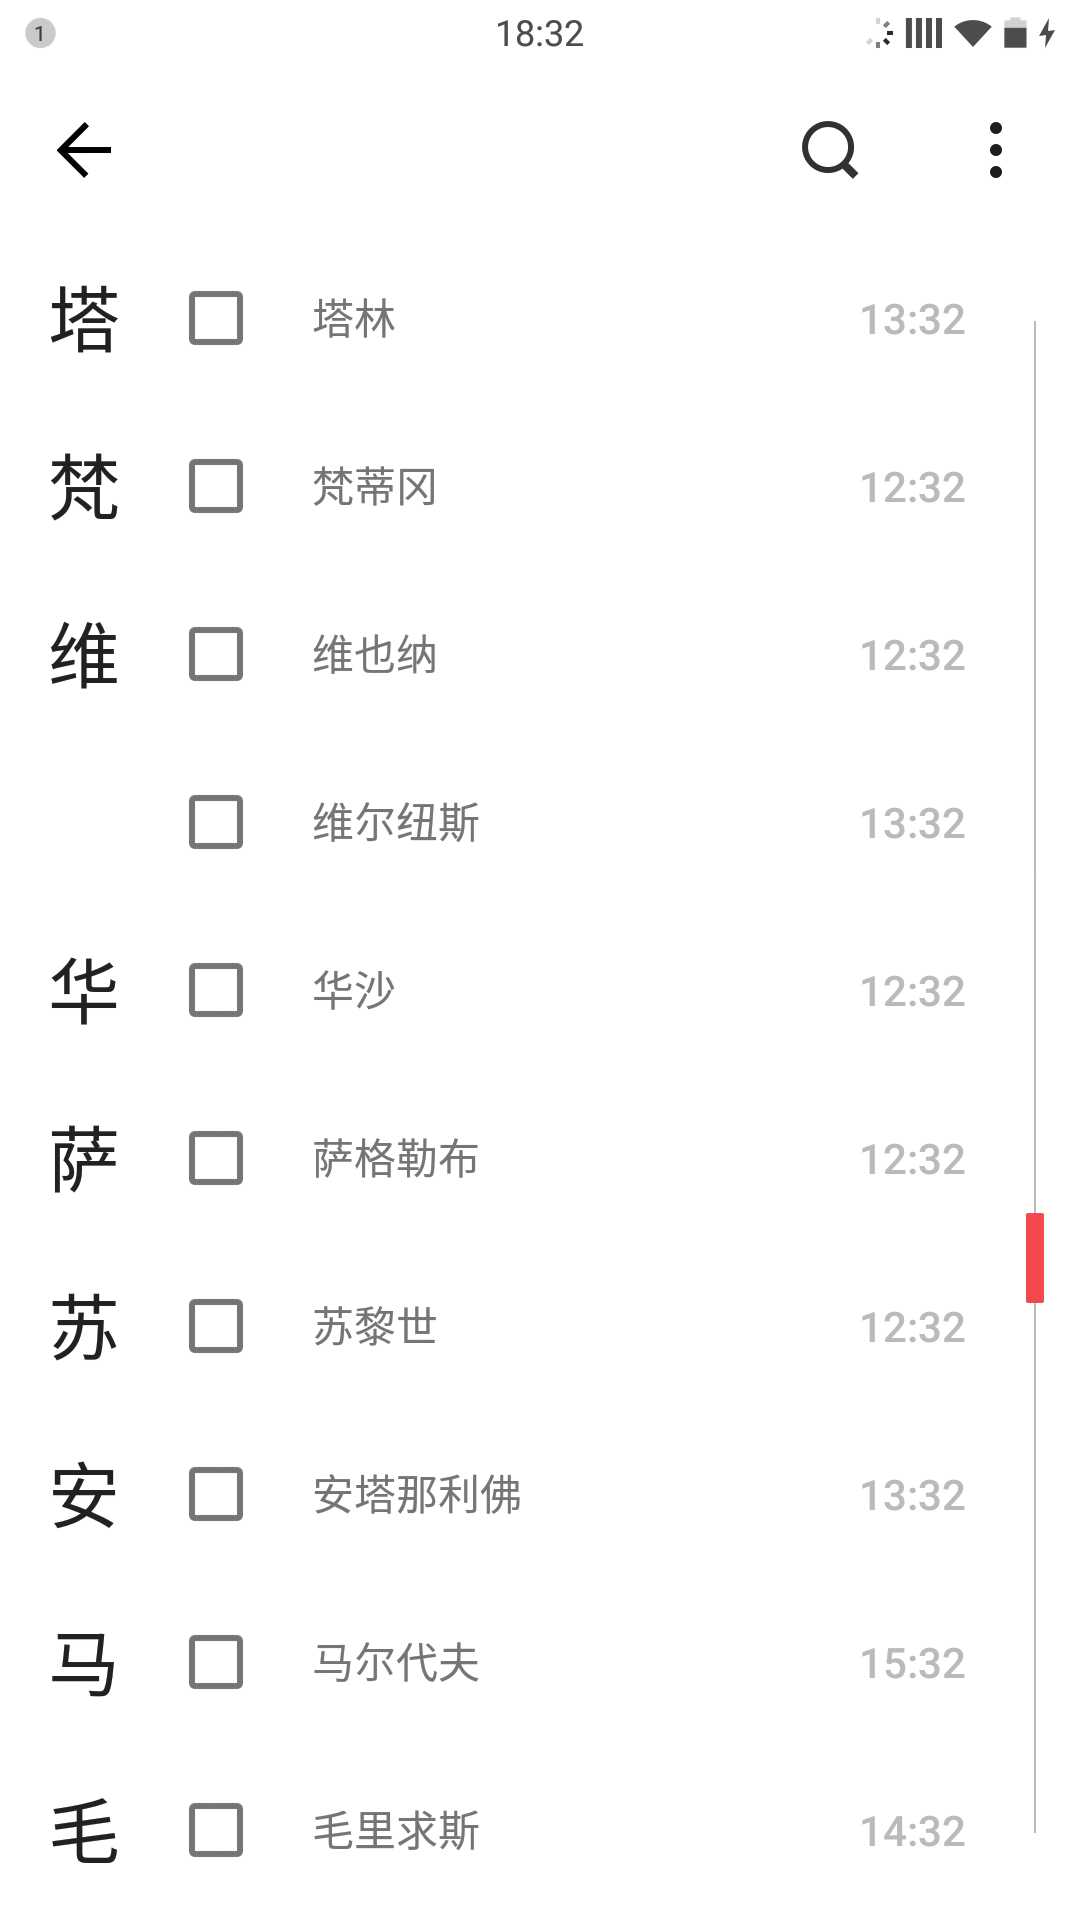 Screenshot_2015-06-05-18-32-41.png